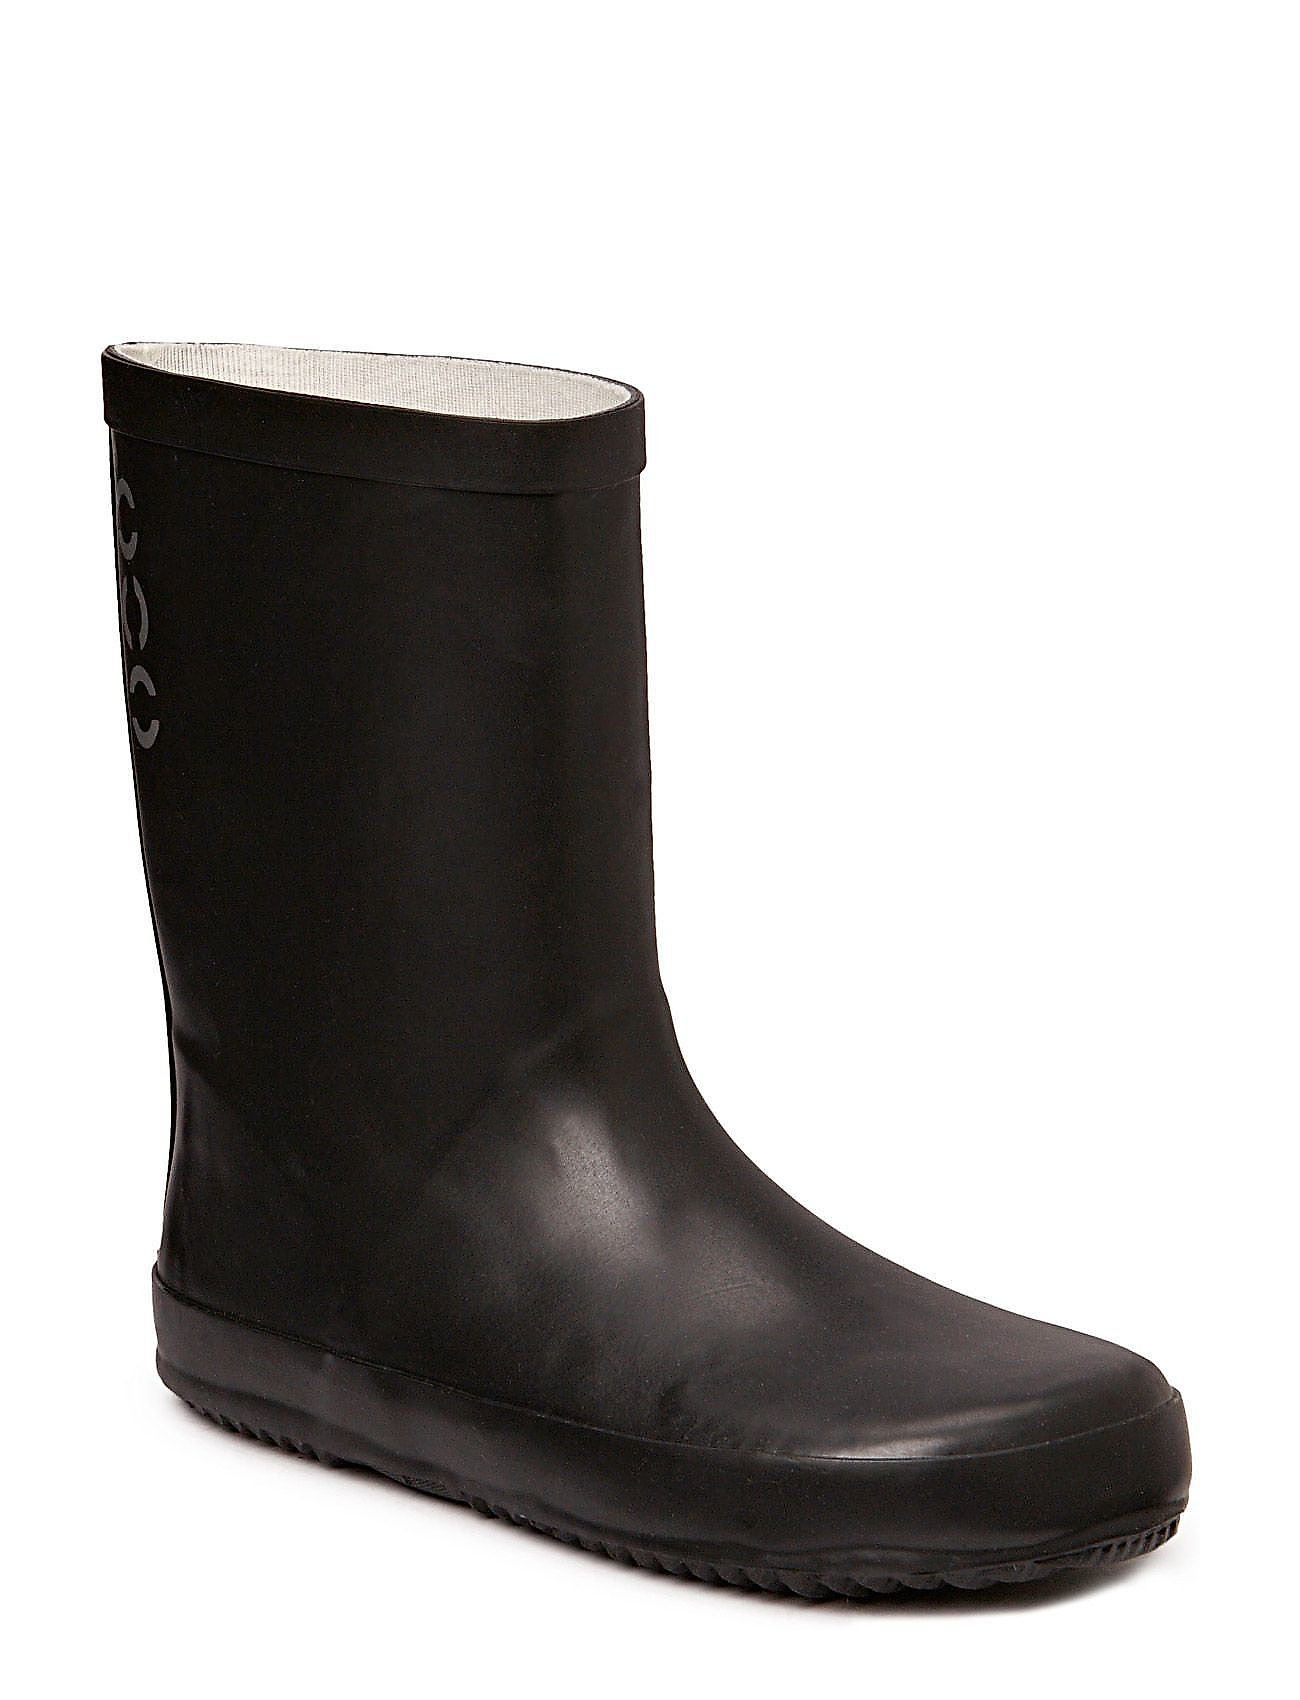 Mikk-Line Wellies - solid colour